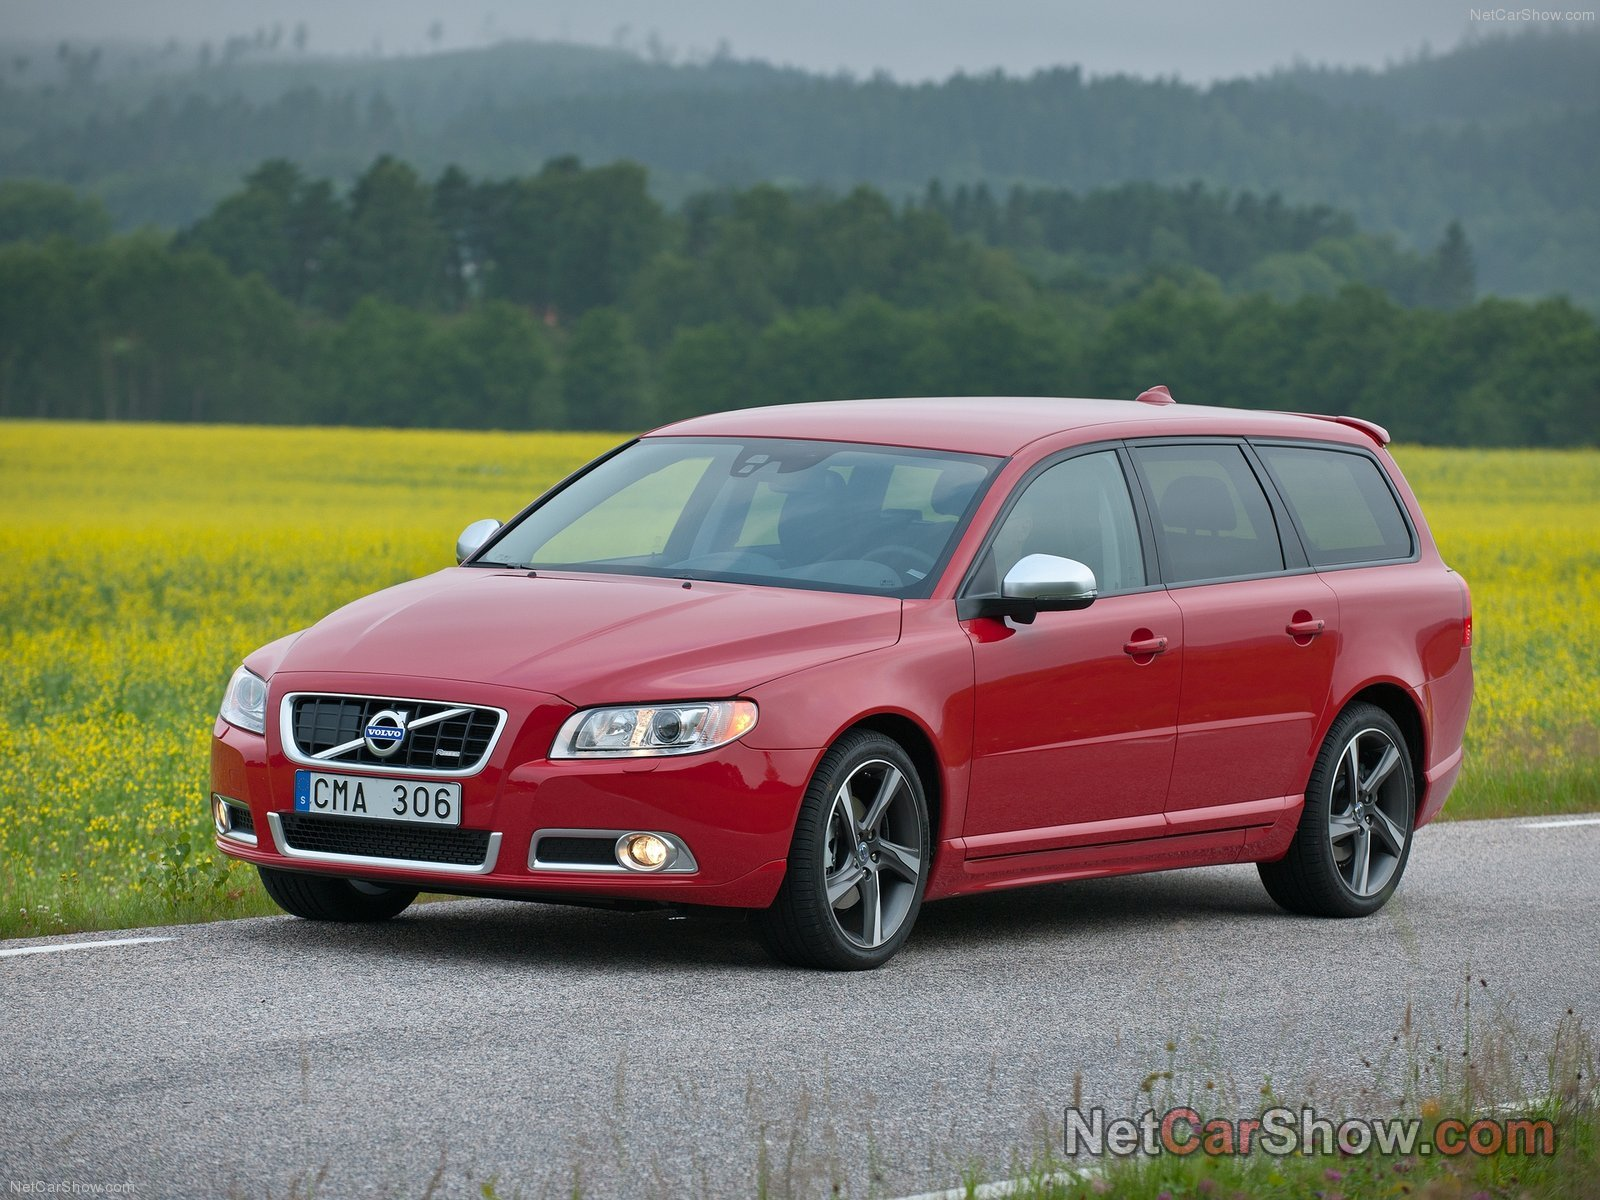 2011 Volvo XC70 - Price, Photos, Reviews & Features   2011 Volvo V70 Wagon